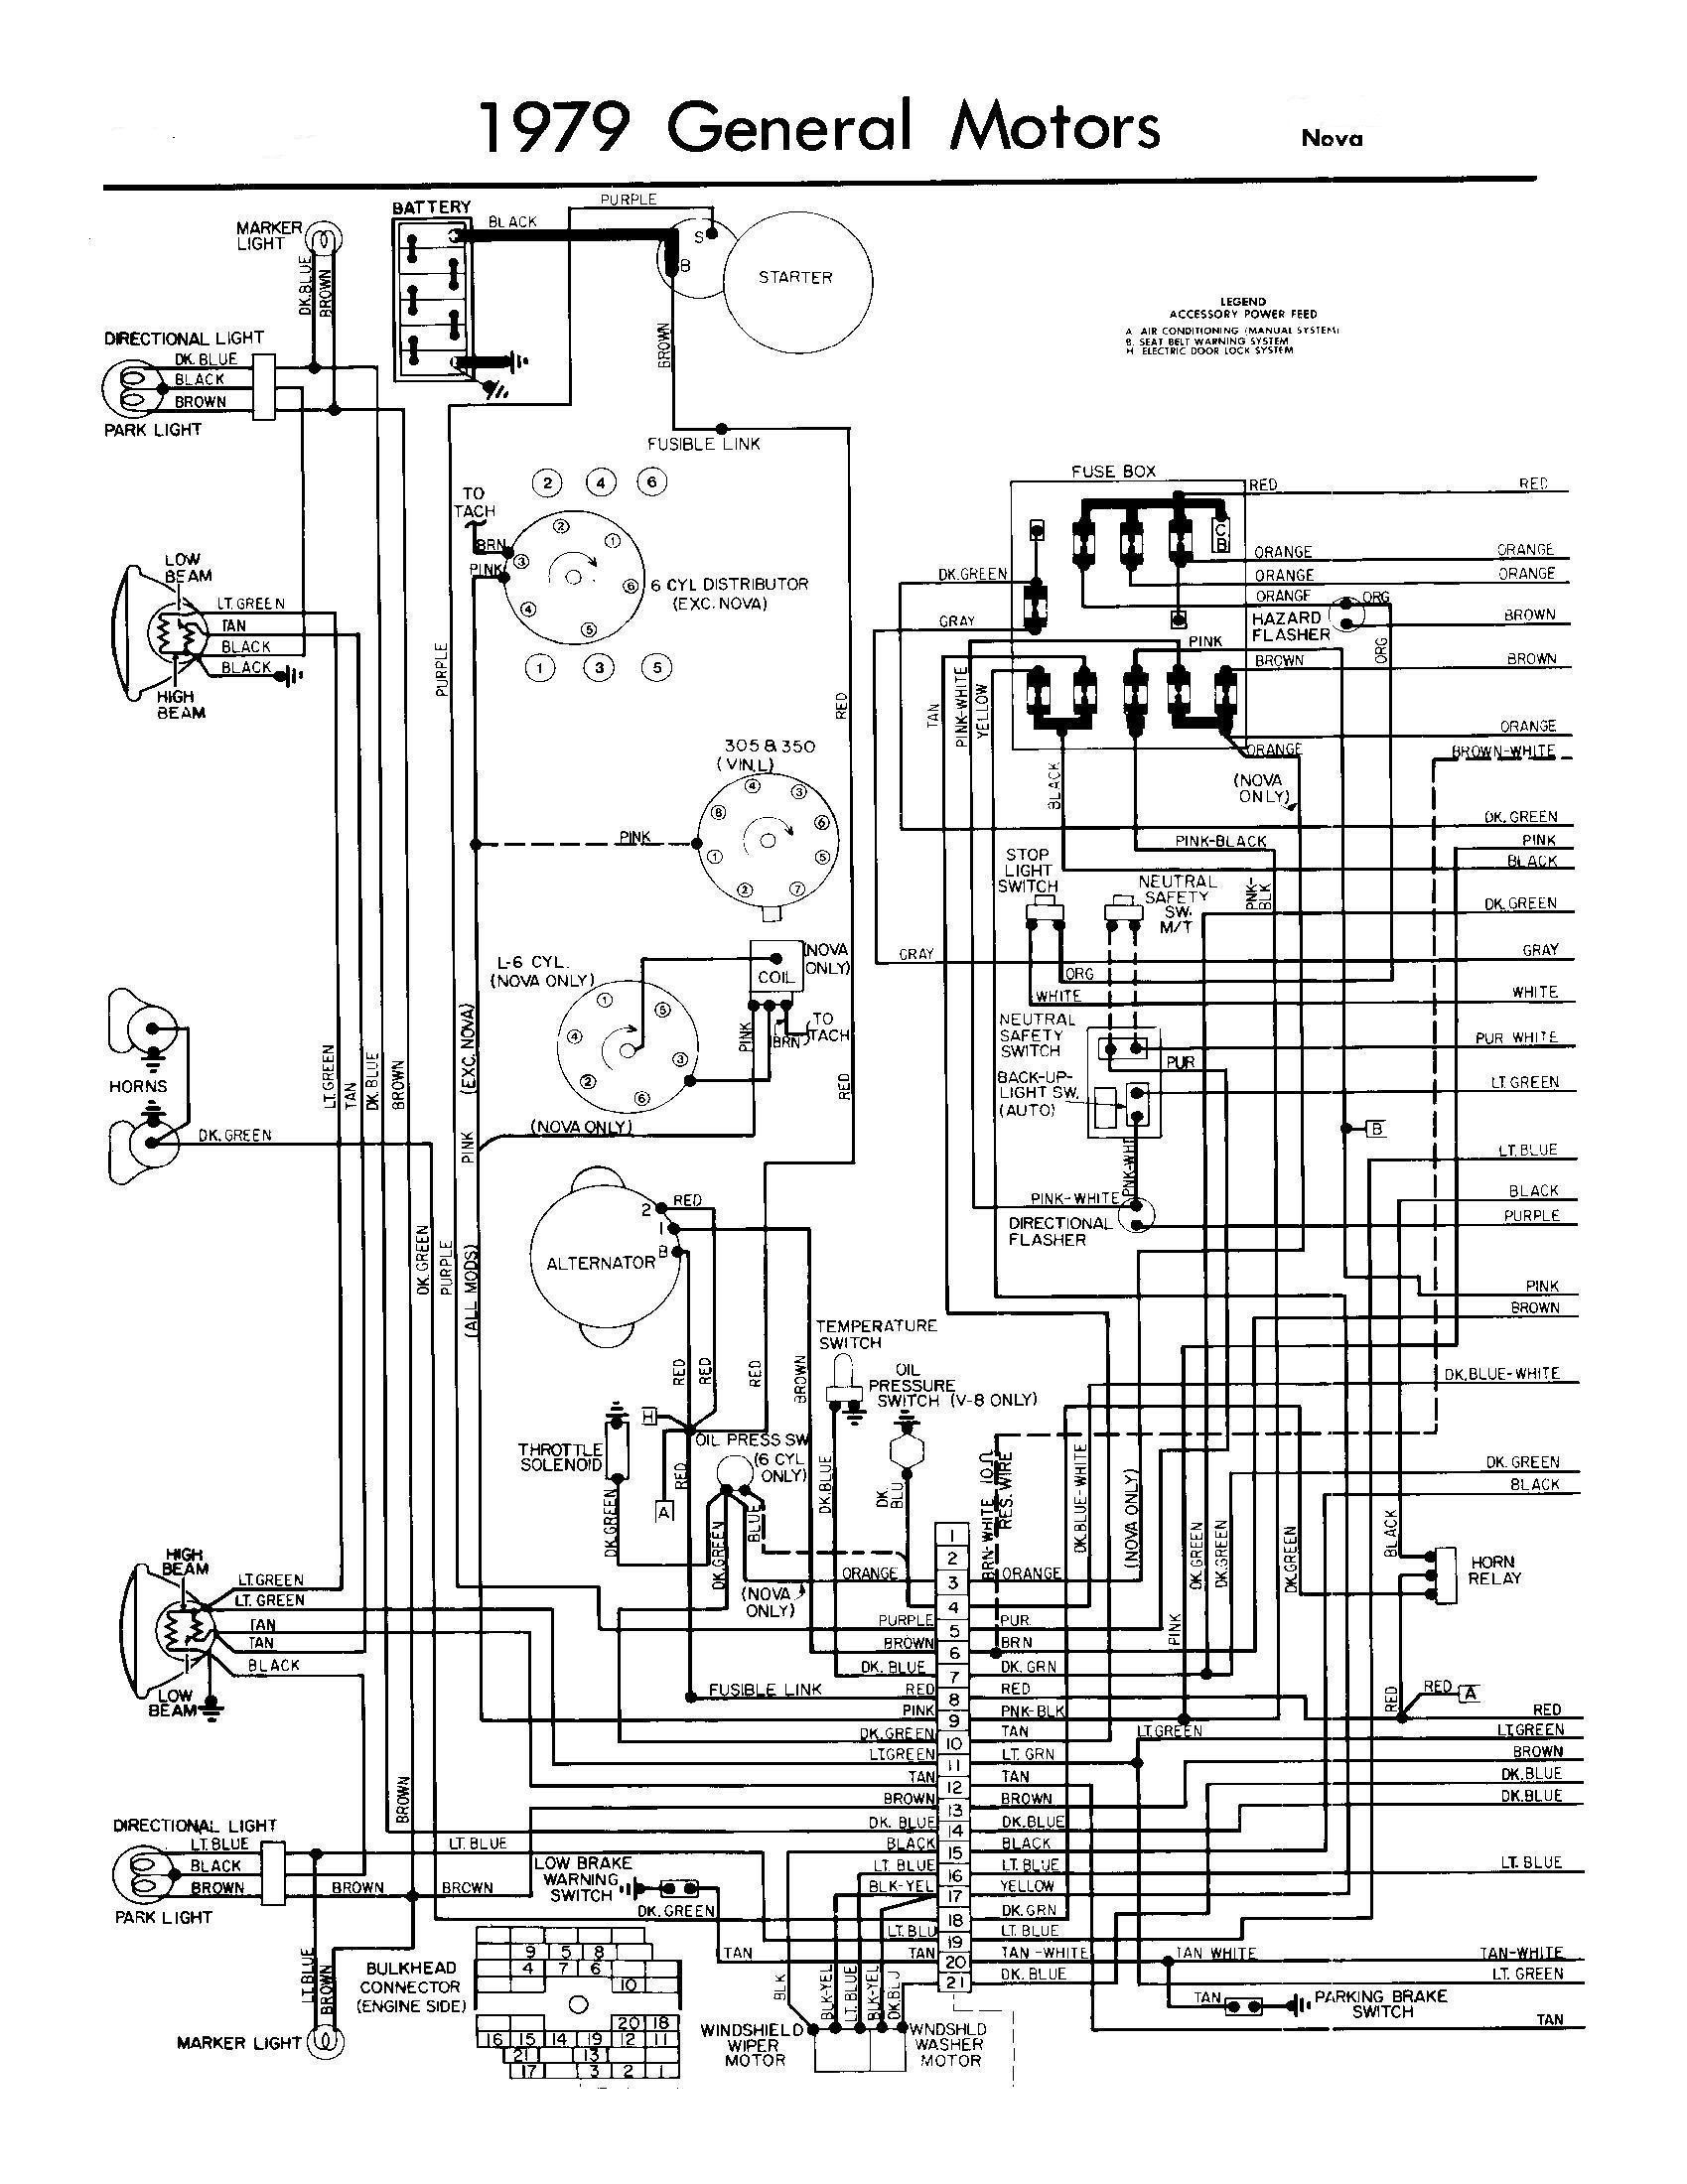 68 chevrolet c10 wiring diagram easy wiring diagrams u2022 rh art isere com 1970 c10 wiring harness diagram 1970 chevrolet c10 wiring diagram